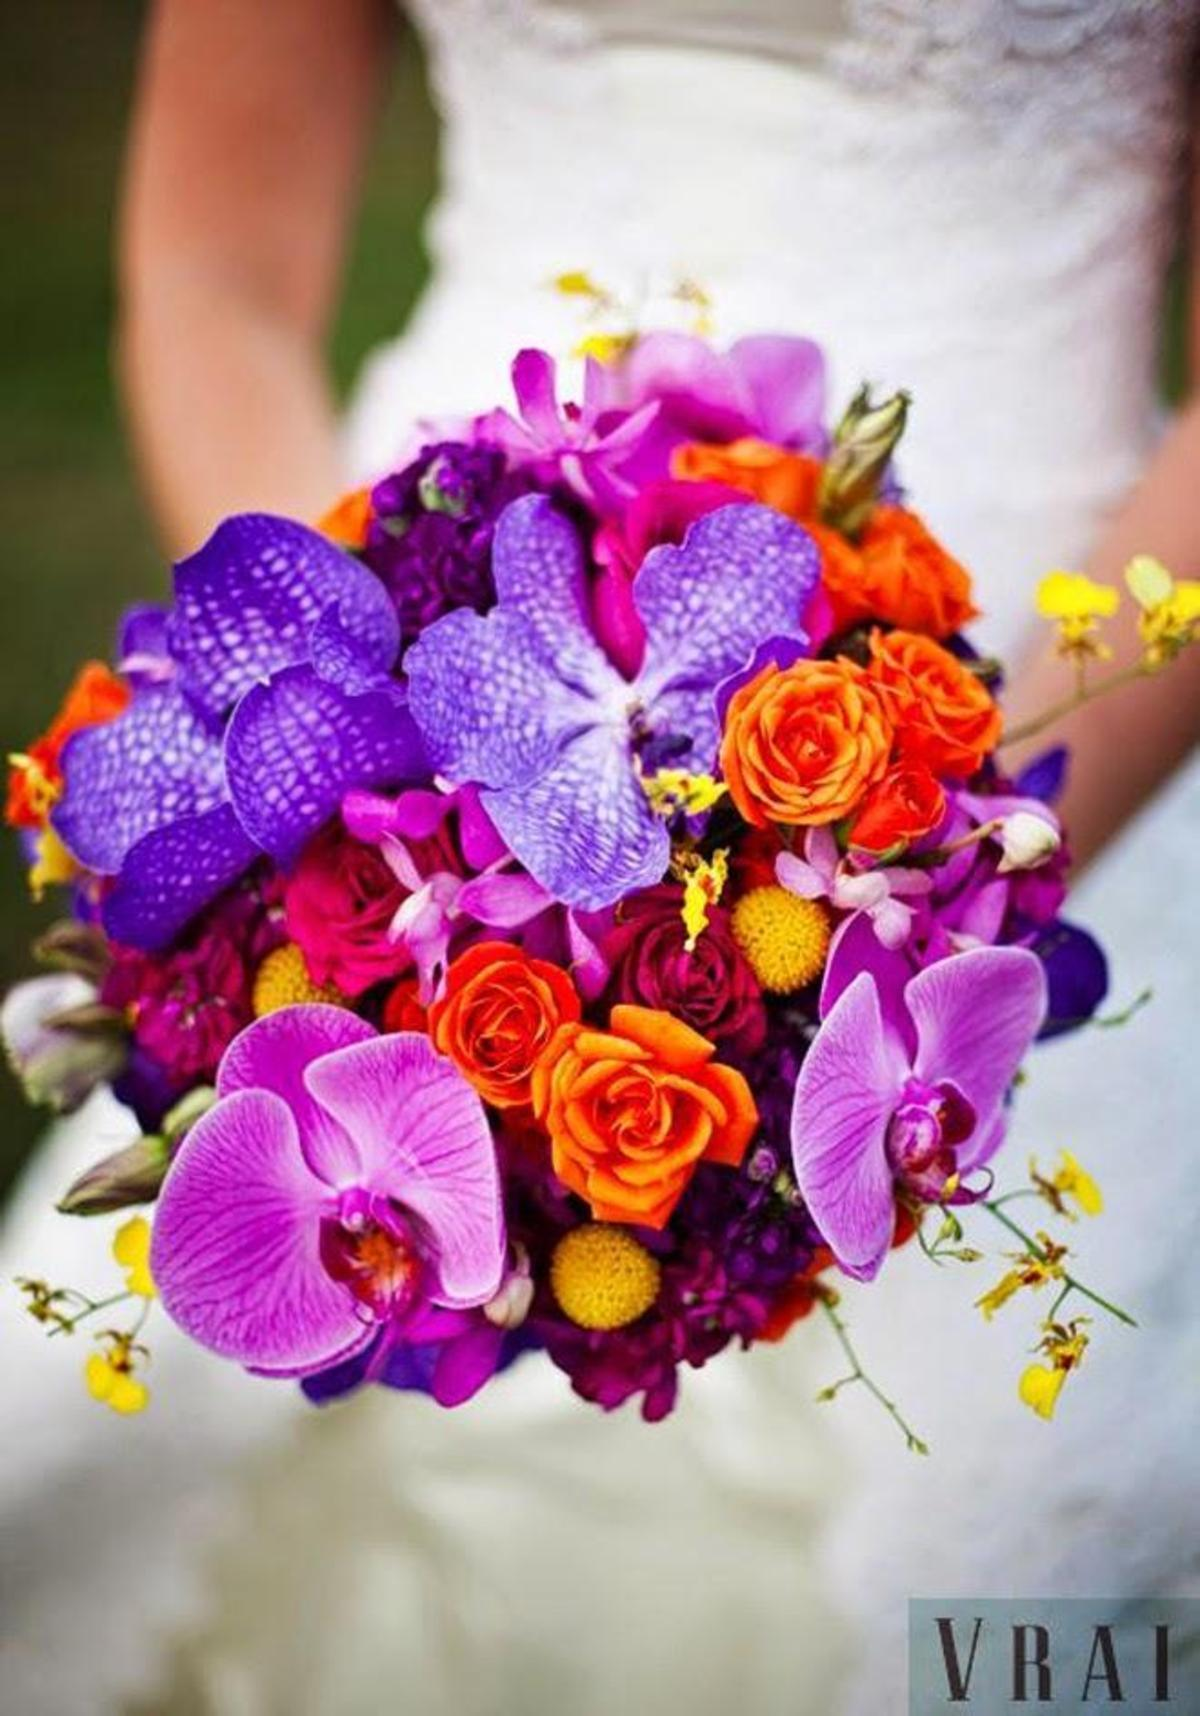 12-stunning-wedding-bouquets-32nd-edition-belle-the-magazine-the-wedding-blog-for-the-sophisticated-bride-432-int